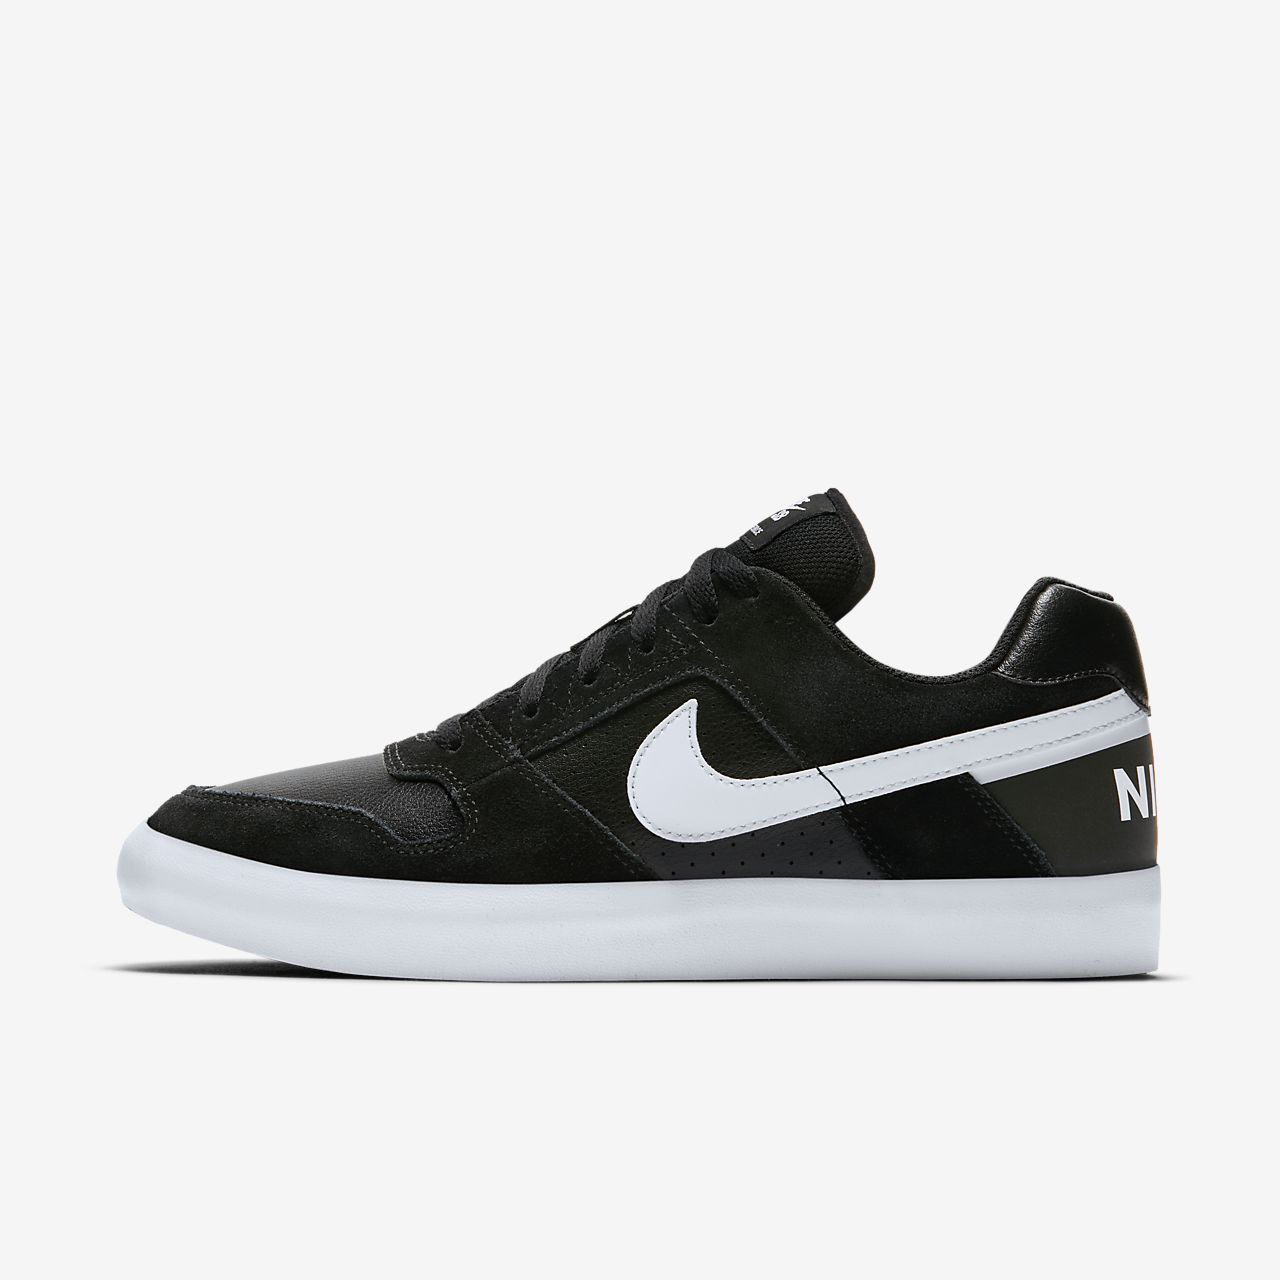 33968f24c1da91 Nike SB Delta Force Vulc Men s Skateboarding Shoe. Nike.com IN